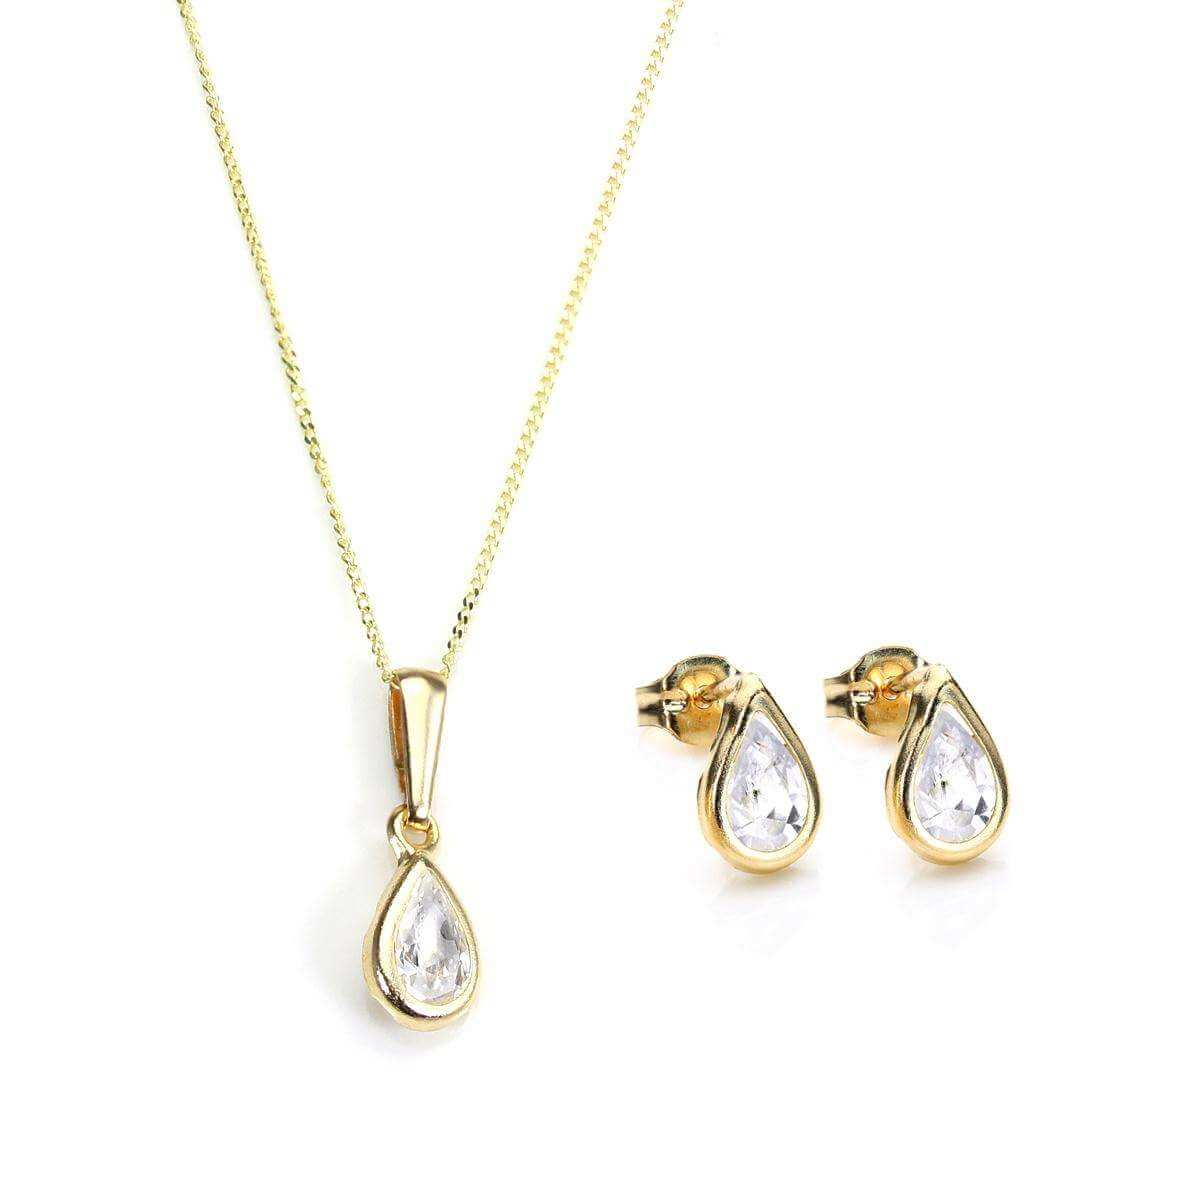 9ct Gold & April Birthstone Pendant & Stud Earrings Set